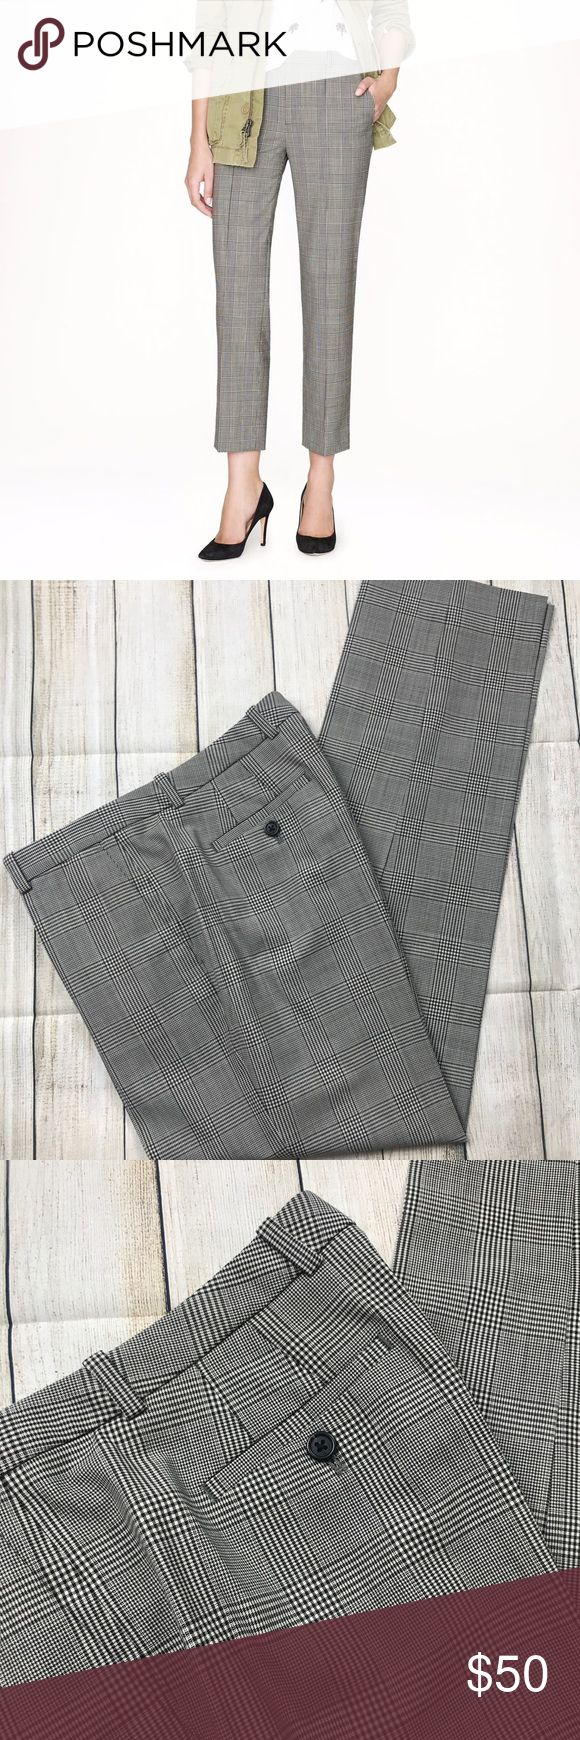 Womens j Crew tall eaton boy trouser pants plaid 4 Excellent condition! Please see the photos I have attached.   If you need measurements feel free to ask!  I am open to reasonable offers and I always ship out the item within 1 business day! J. Crew Pants Trousers